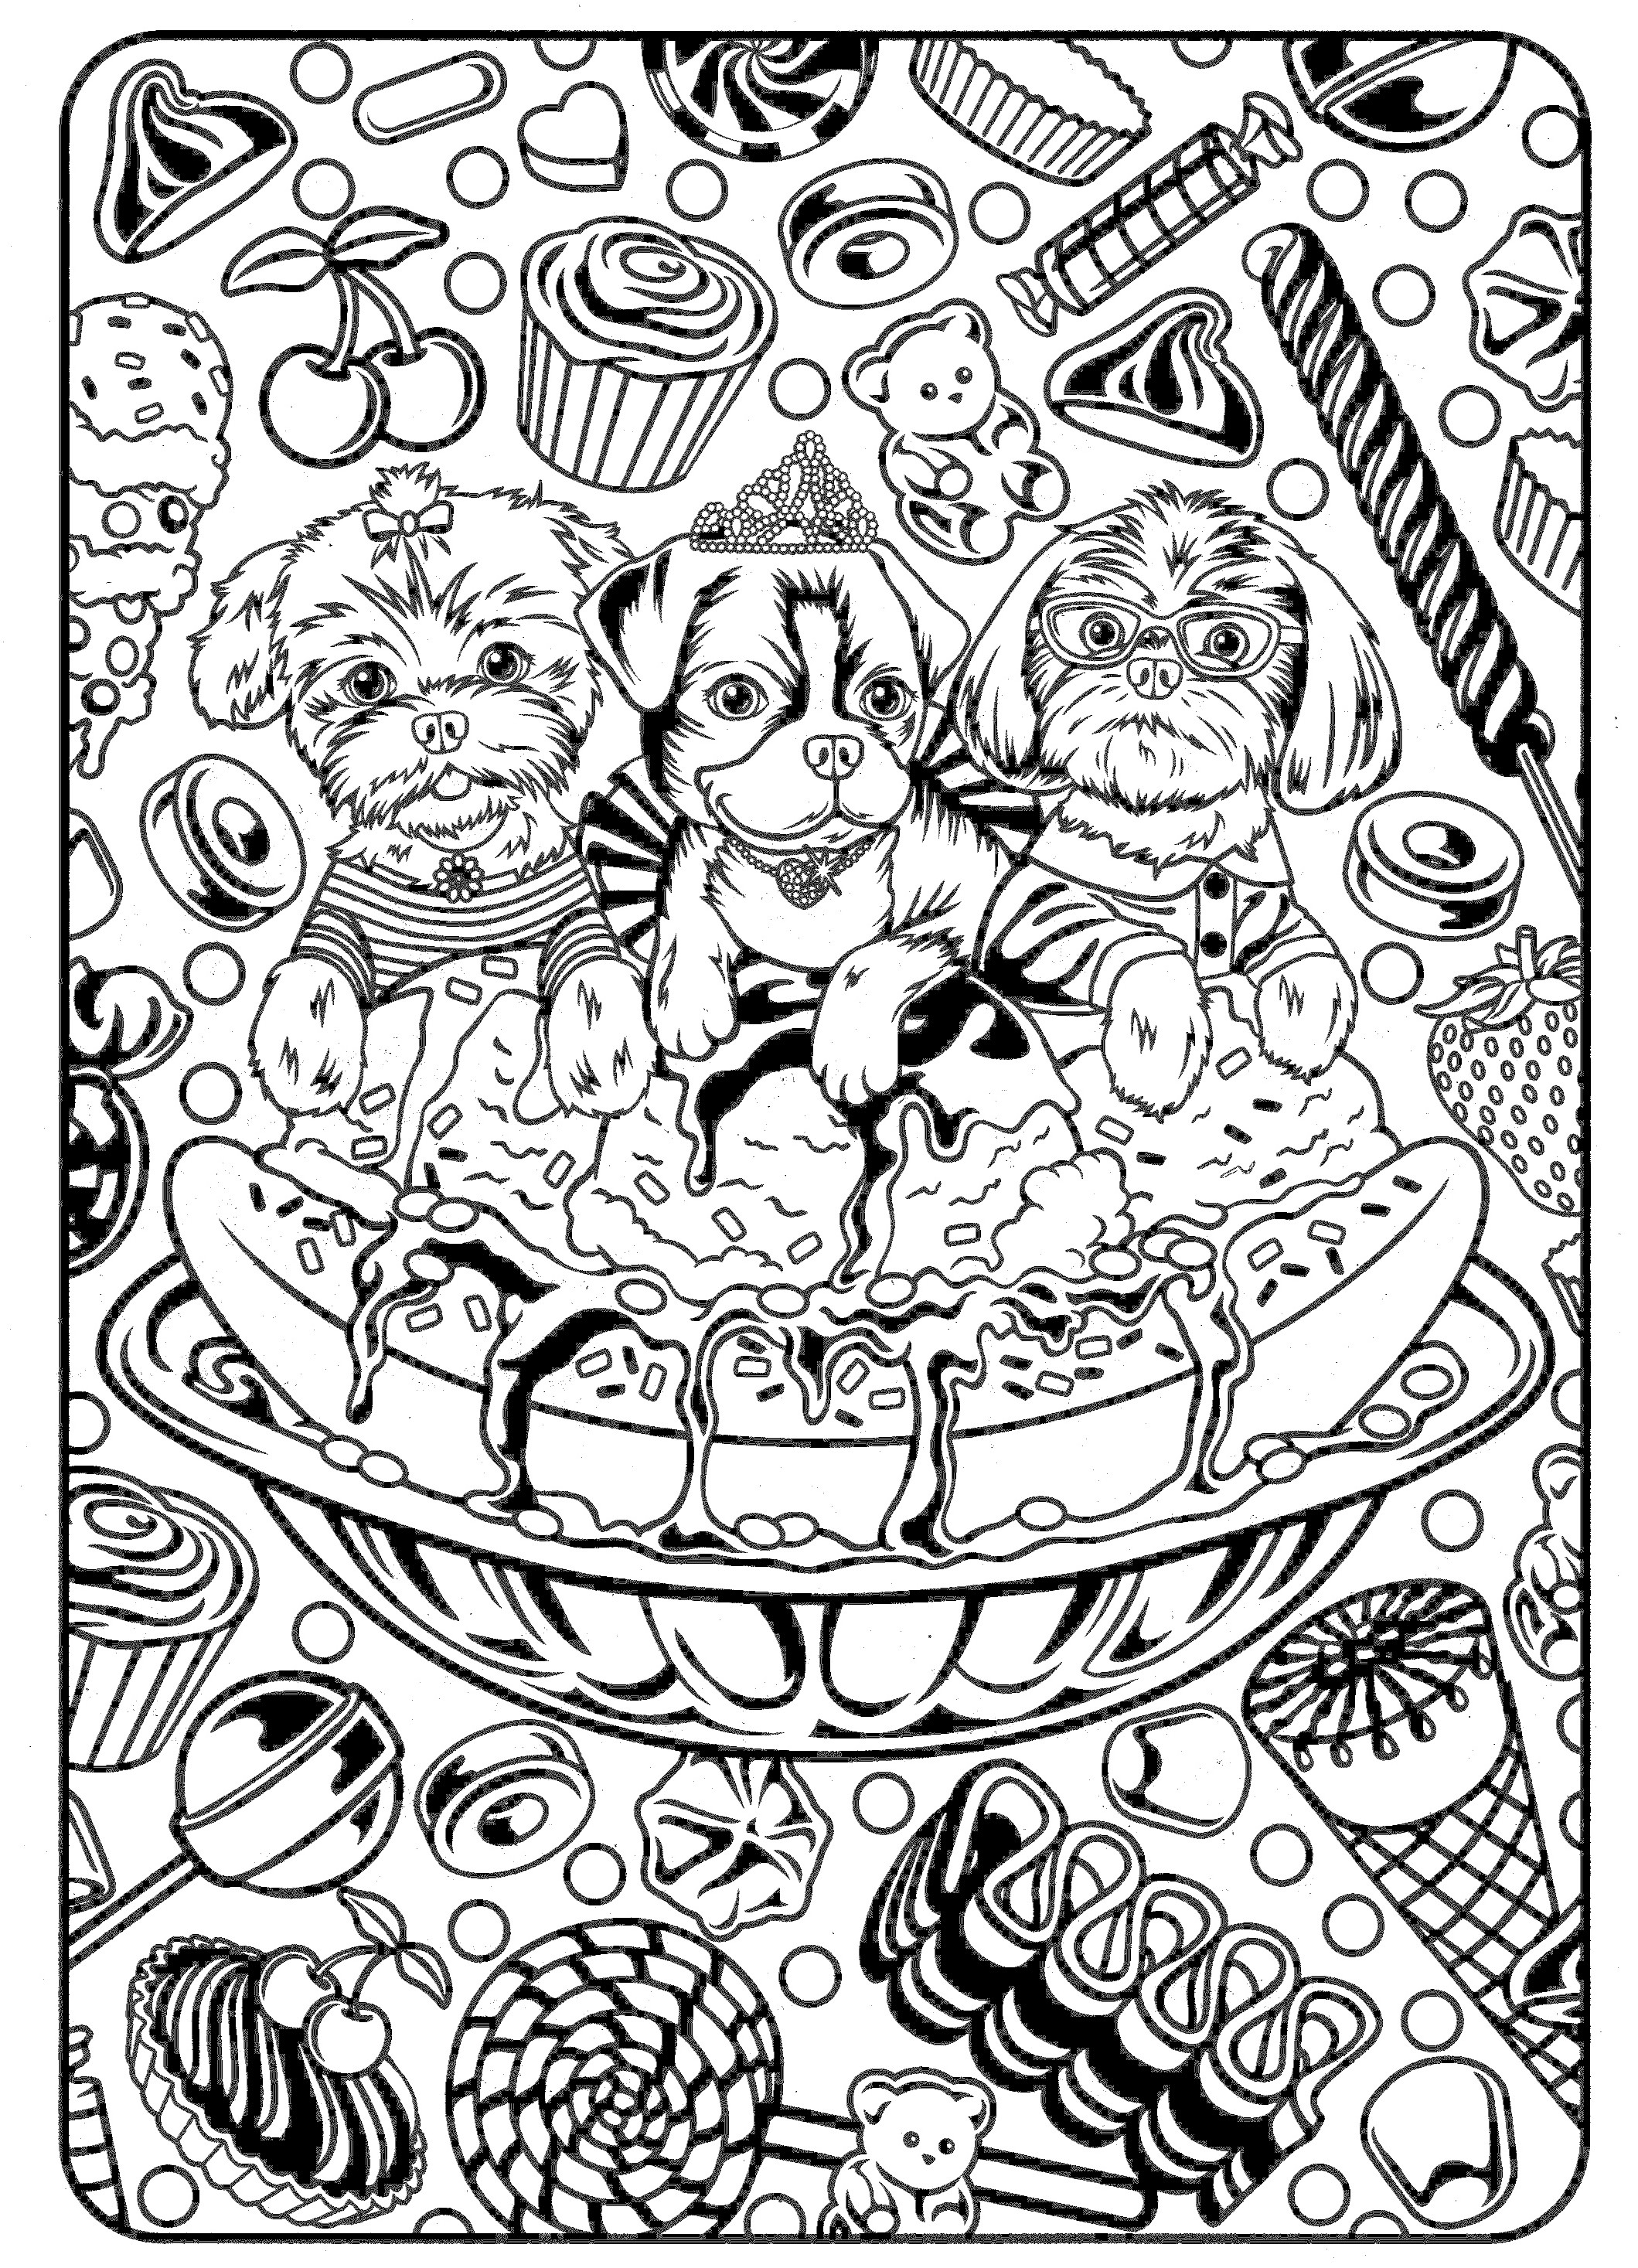 coloring templates for kids free printable tangled coloring pages for kids cool2bkids for templates coloring kids